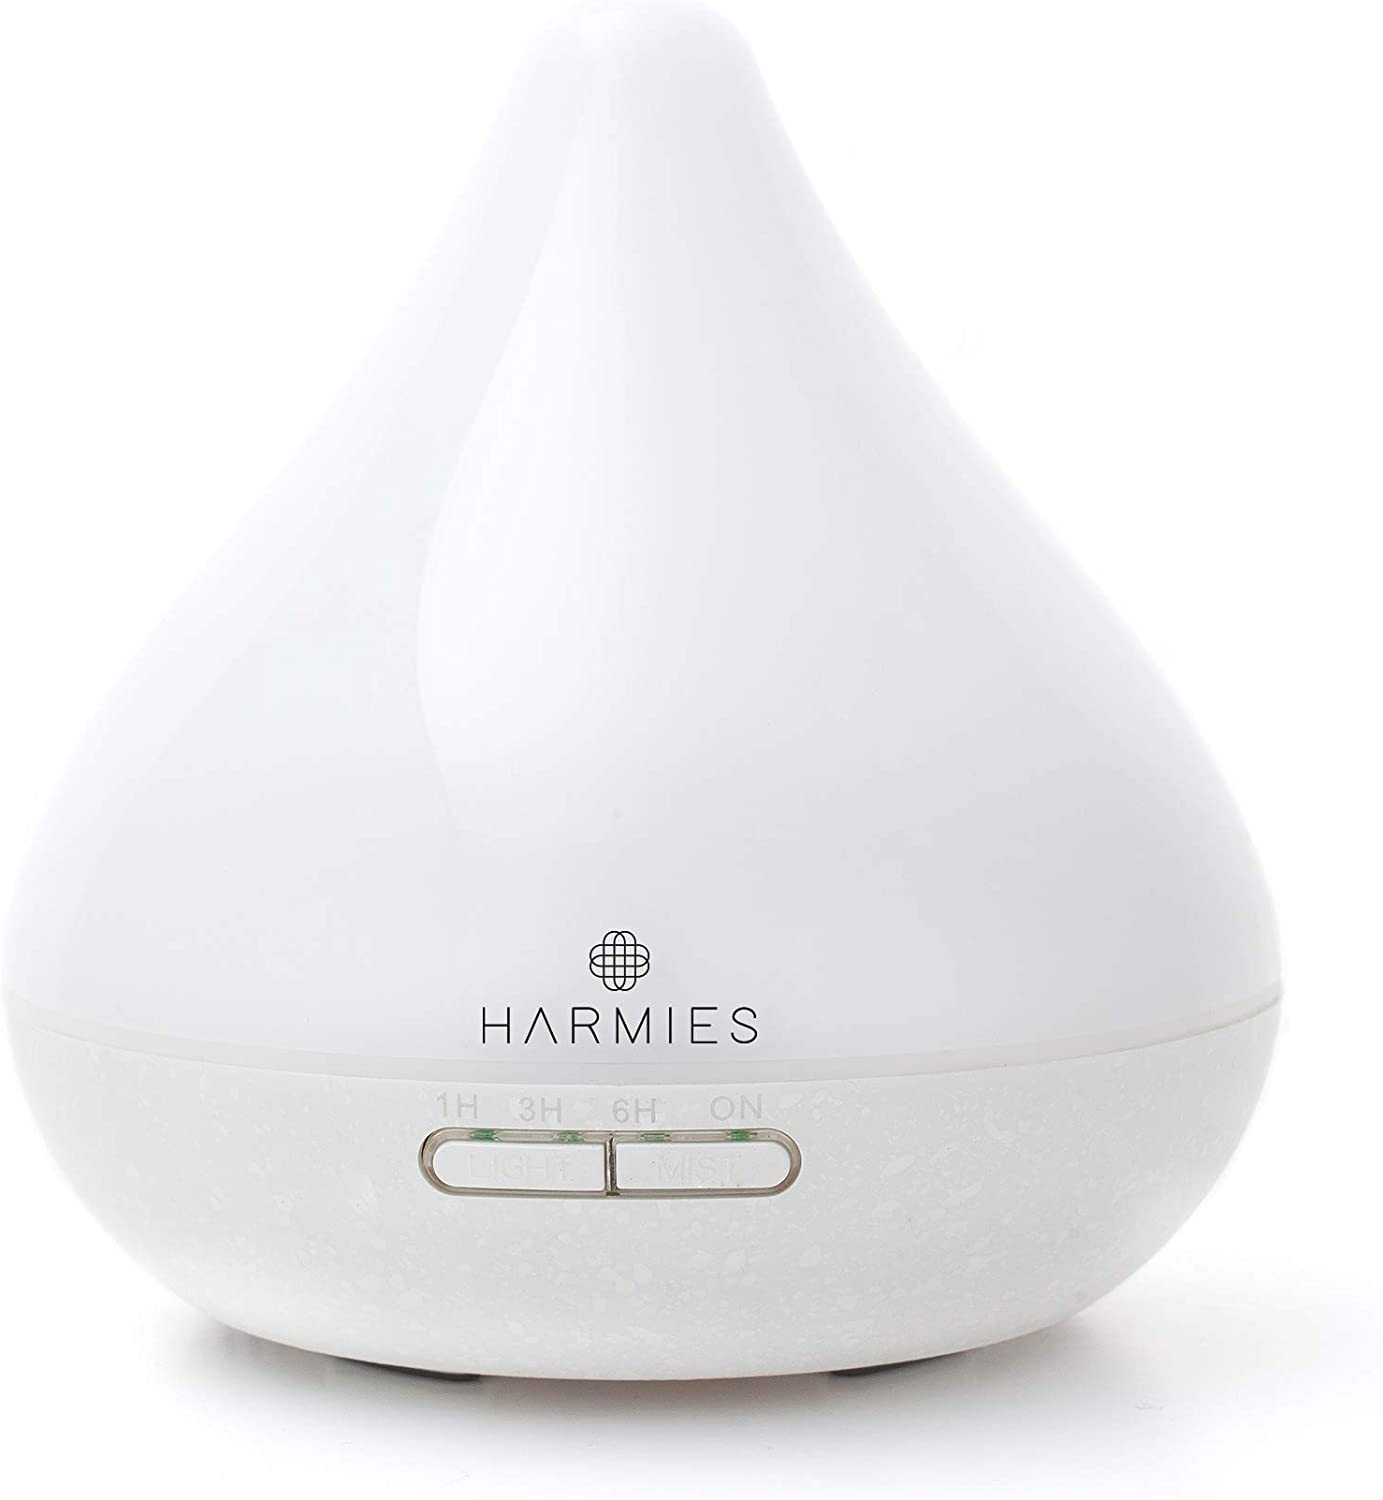 HARMIES 300ml Essential Oil Diffusers, Aromatherapy Diffuser and Humidifier for your Home, Office, Spa, with Ultrasonic Adjustable Cool Mist,